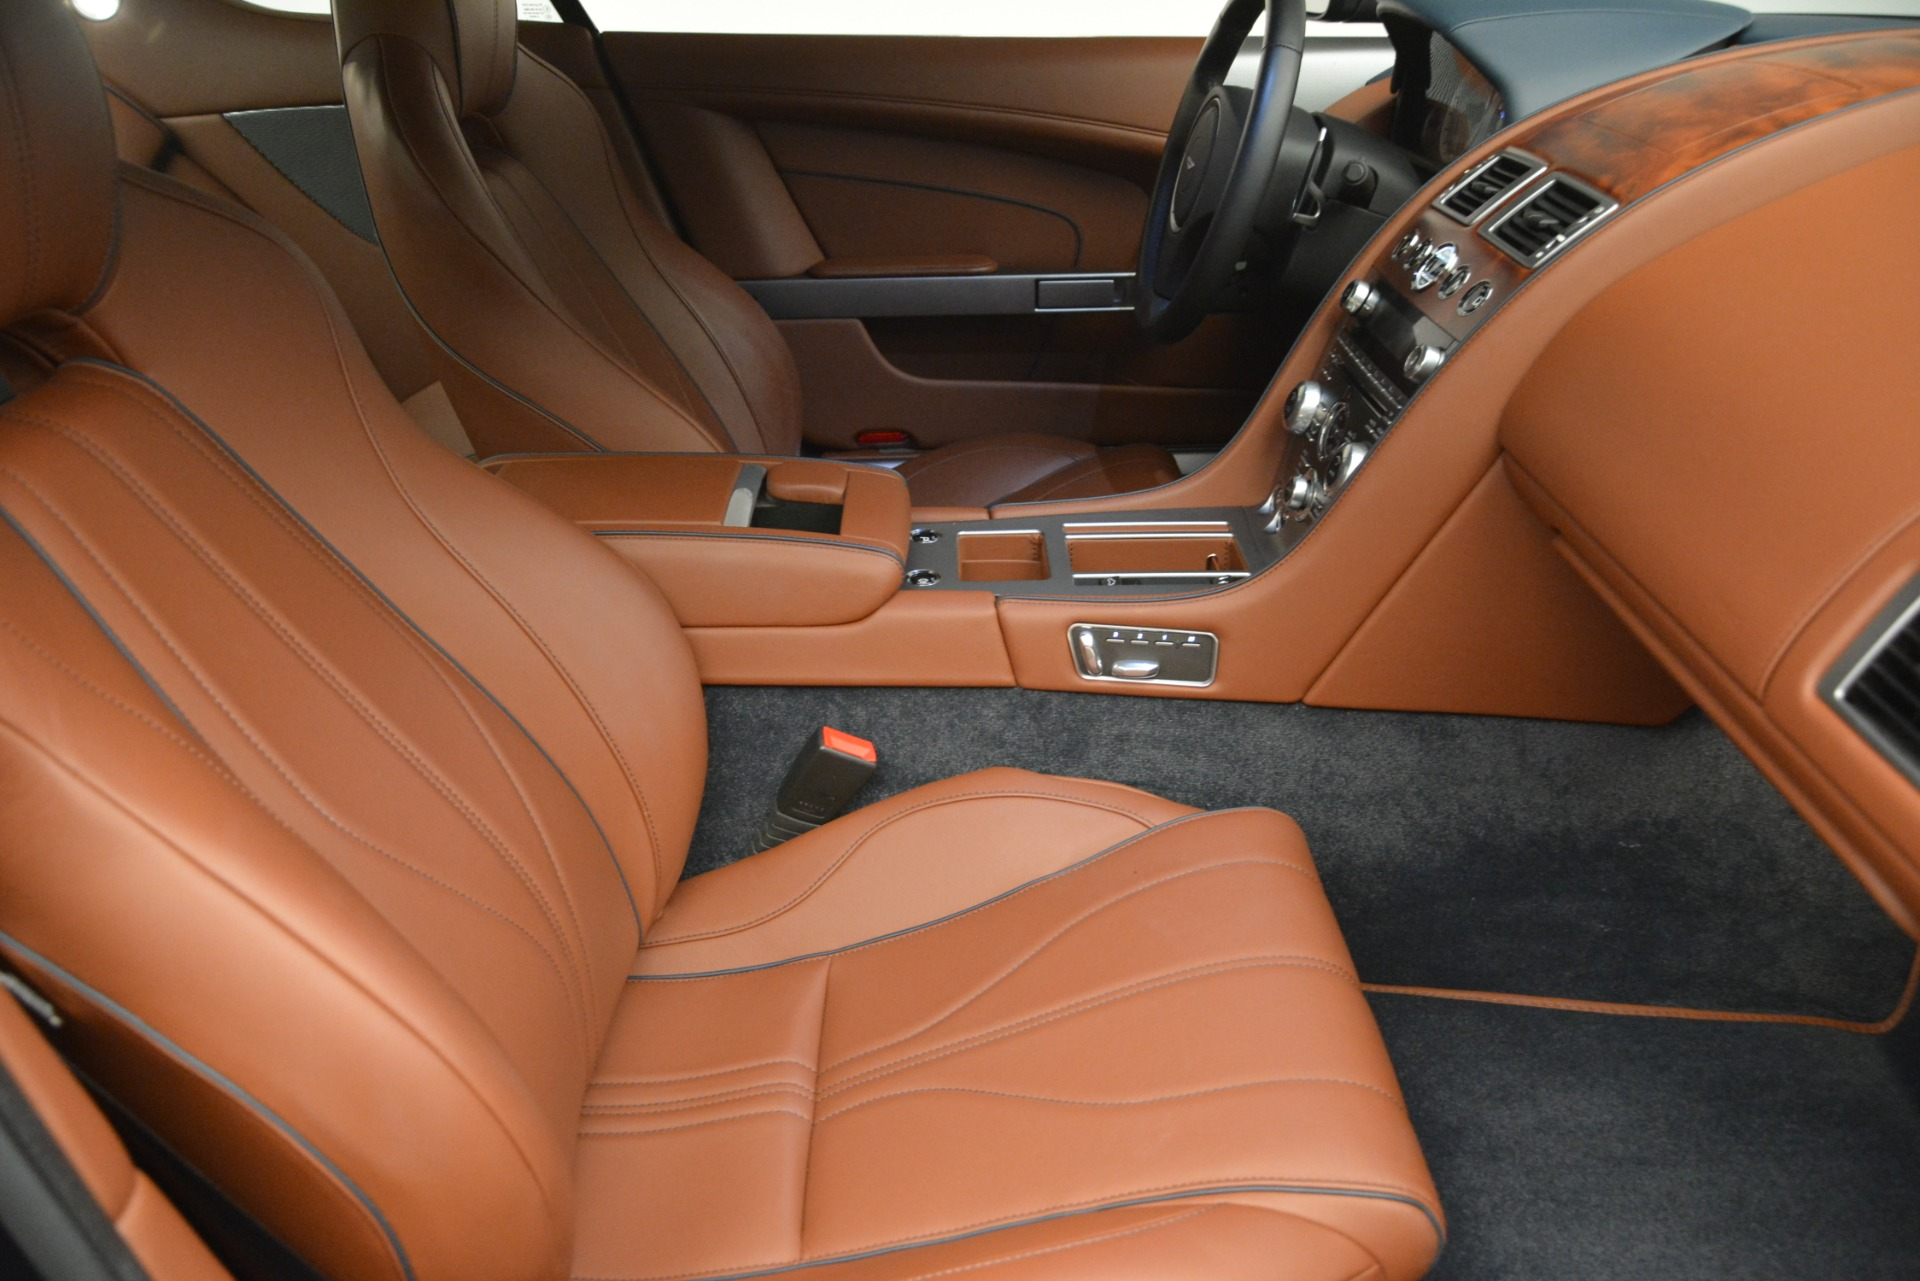 Used 2014 Aston Martin DB9  For Sale In Westport, CT 3010_p21